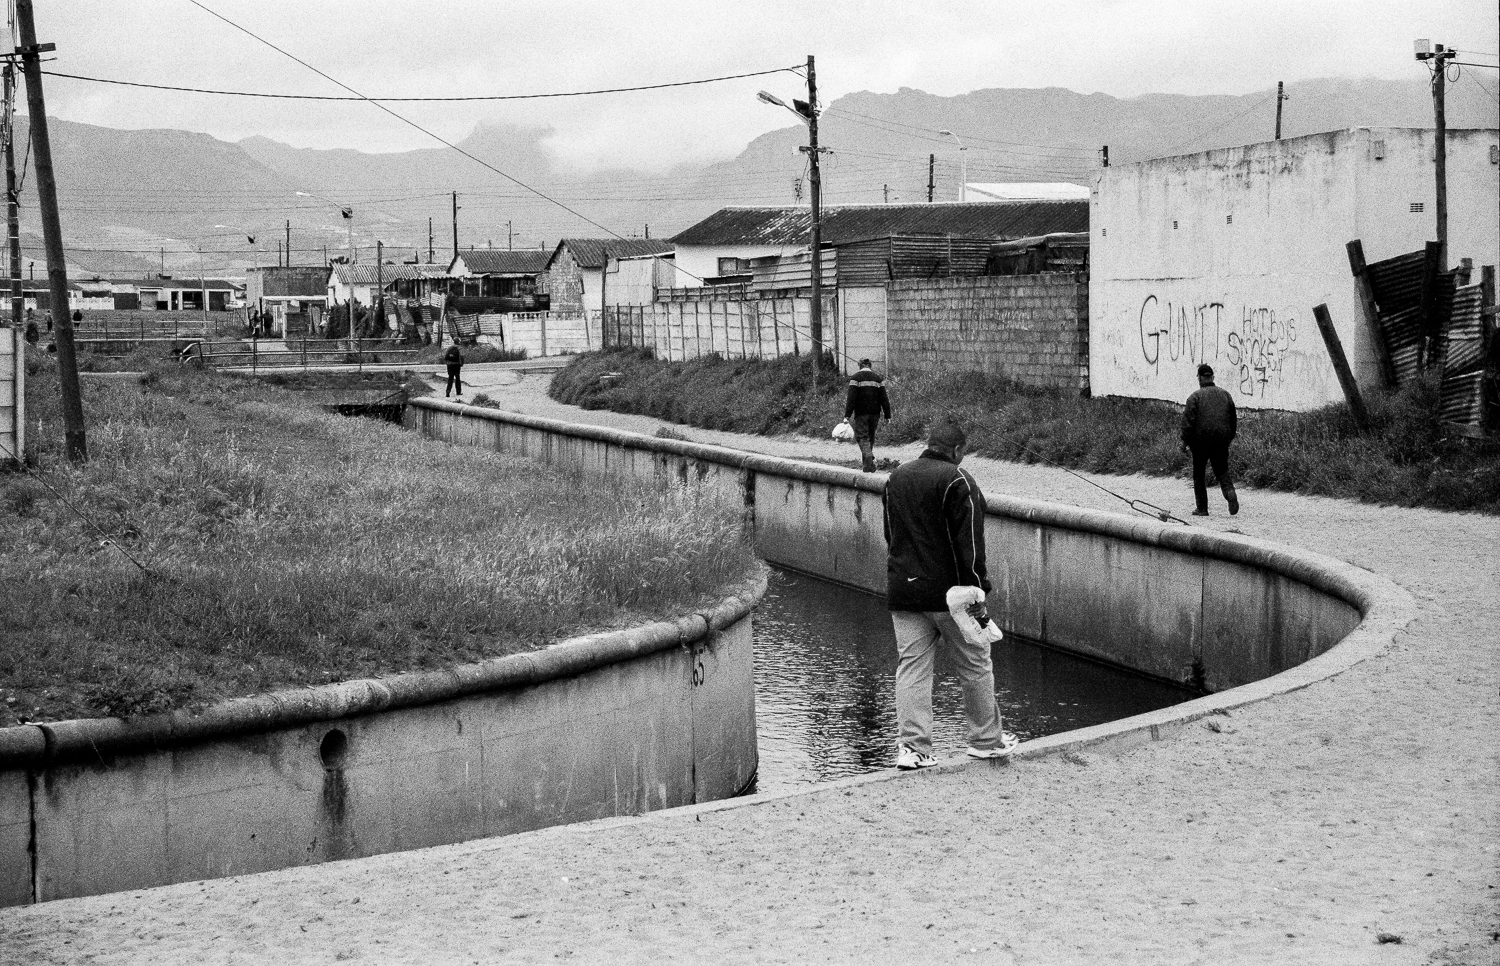 Men walking home after work, Steenberg in Cape Town, 2014.